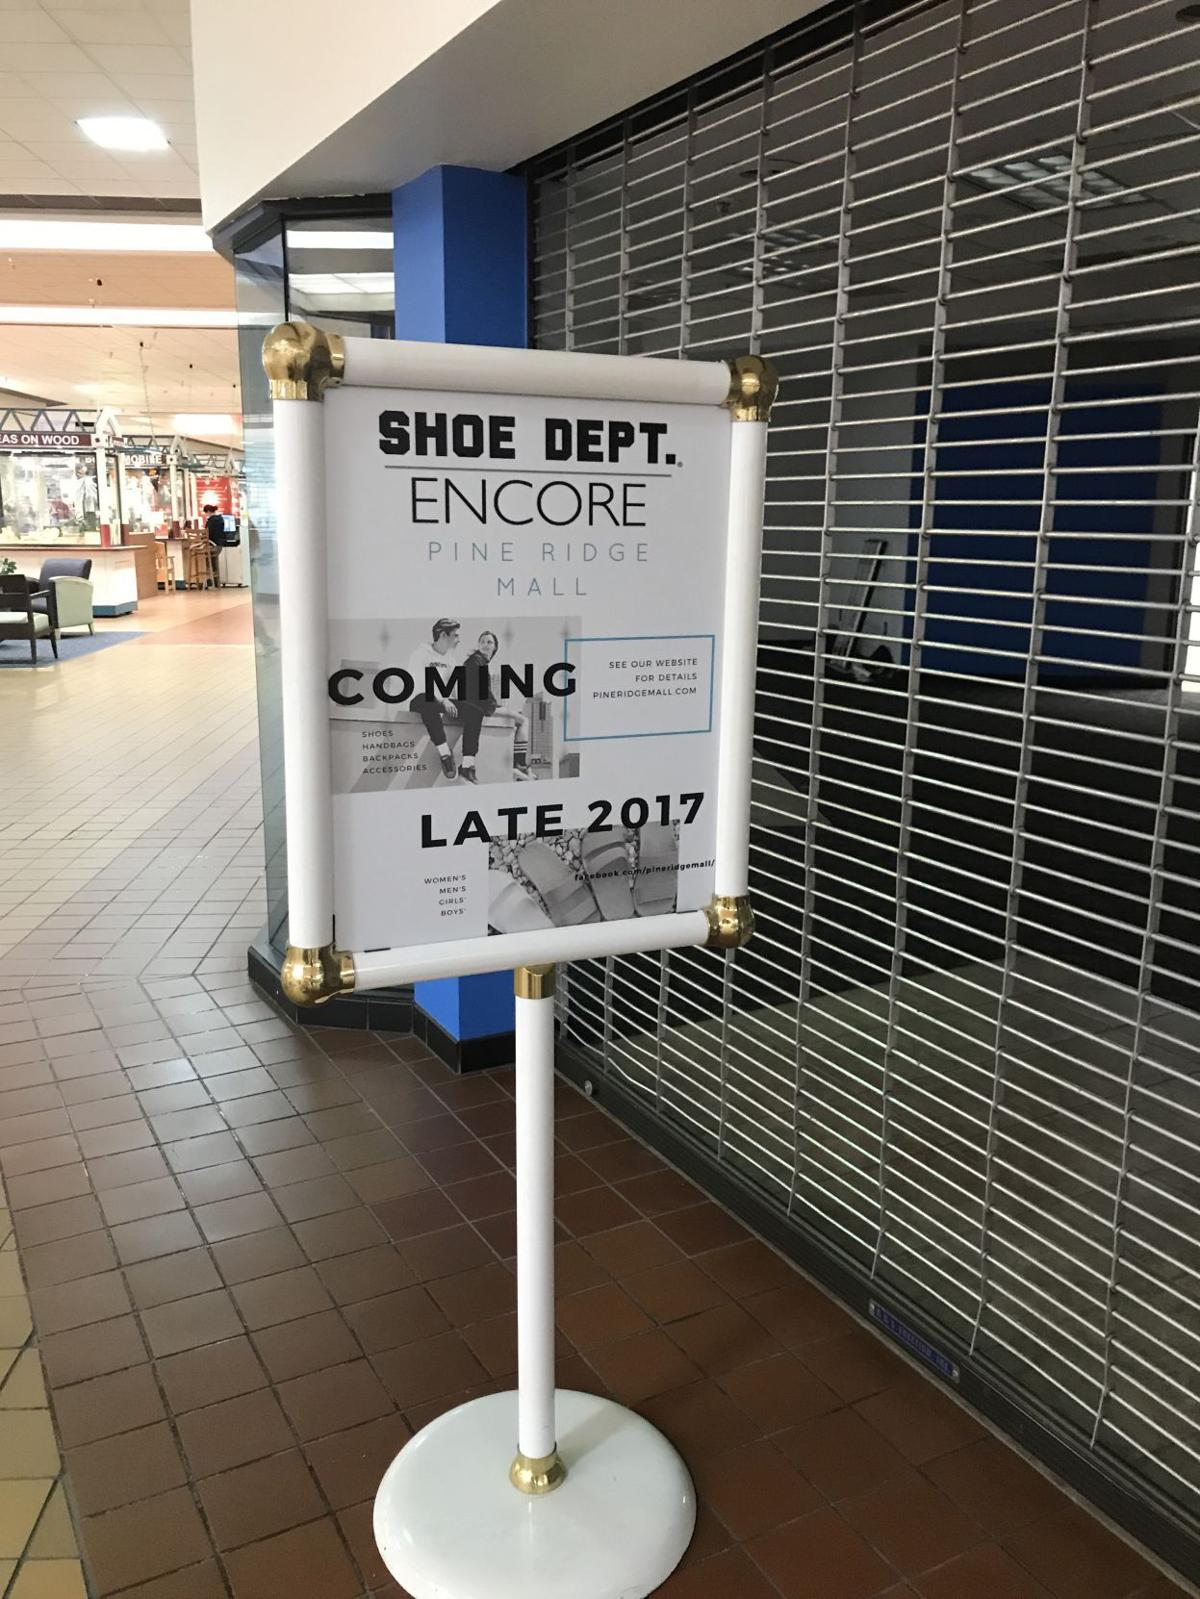 6120fa616aa New store coming to Pine Ridge Mall | Business | idahostatejournal.com